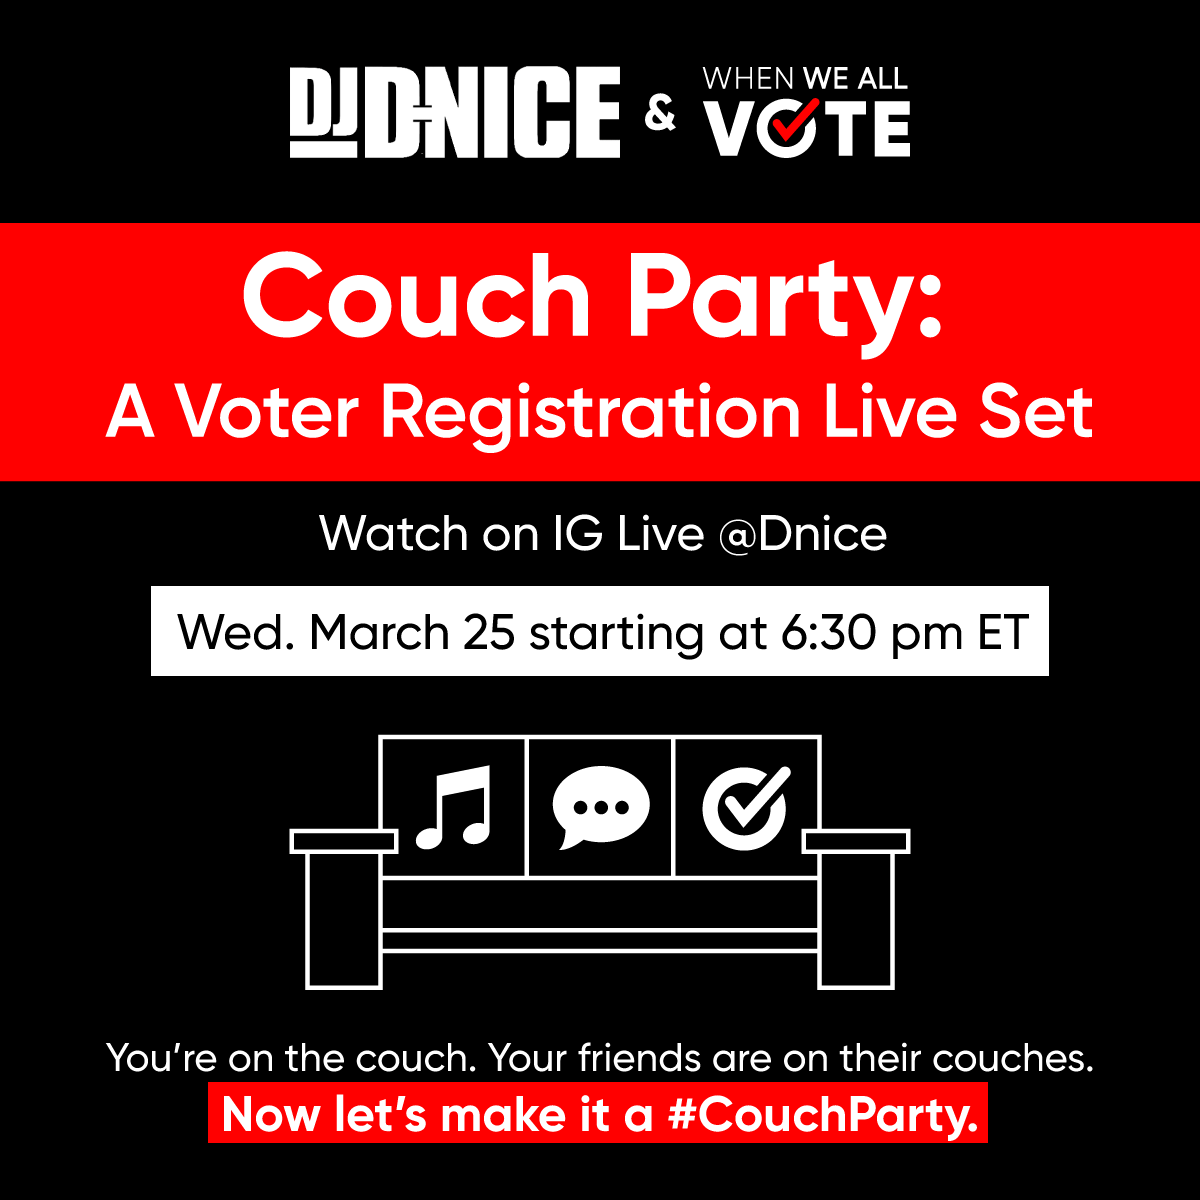 @shondarhimes's photo on #CouchParty